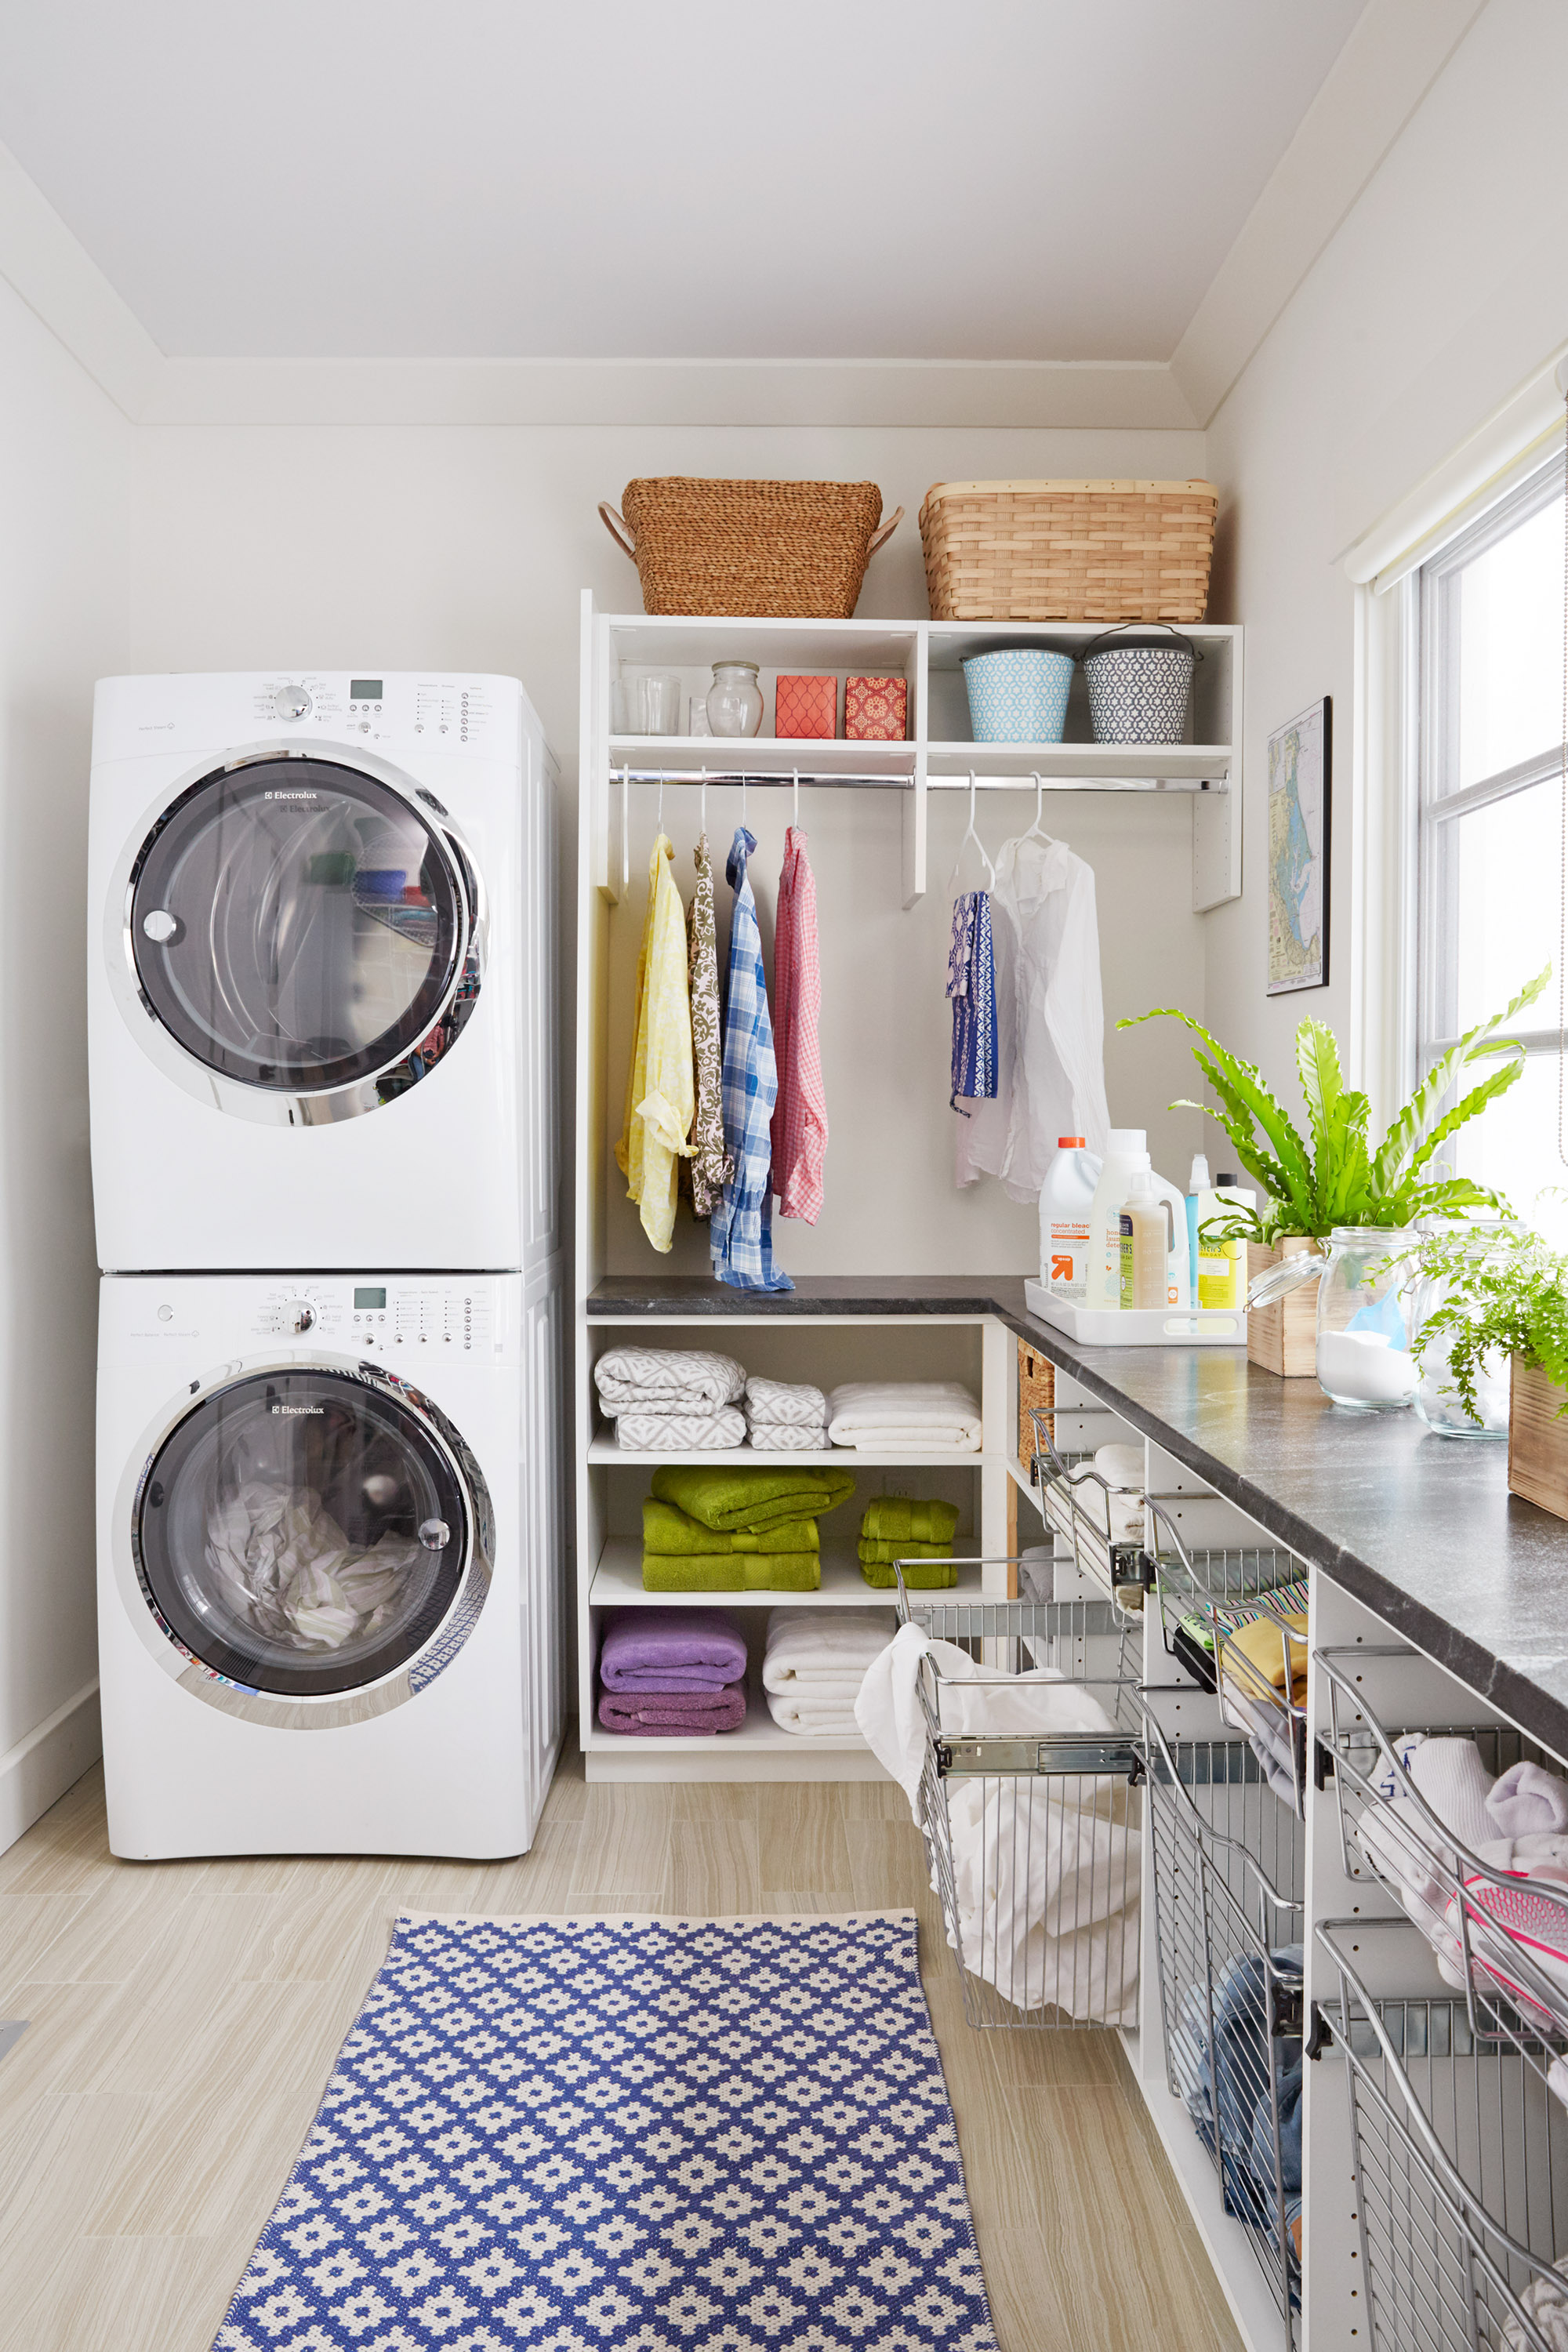 How to Choose the Best Dryer | Better Homes & Gardens